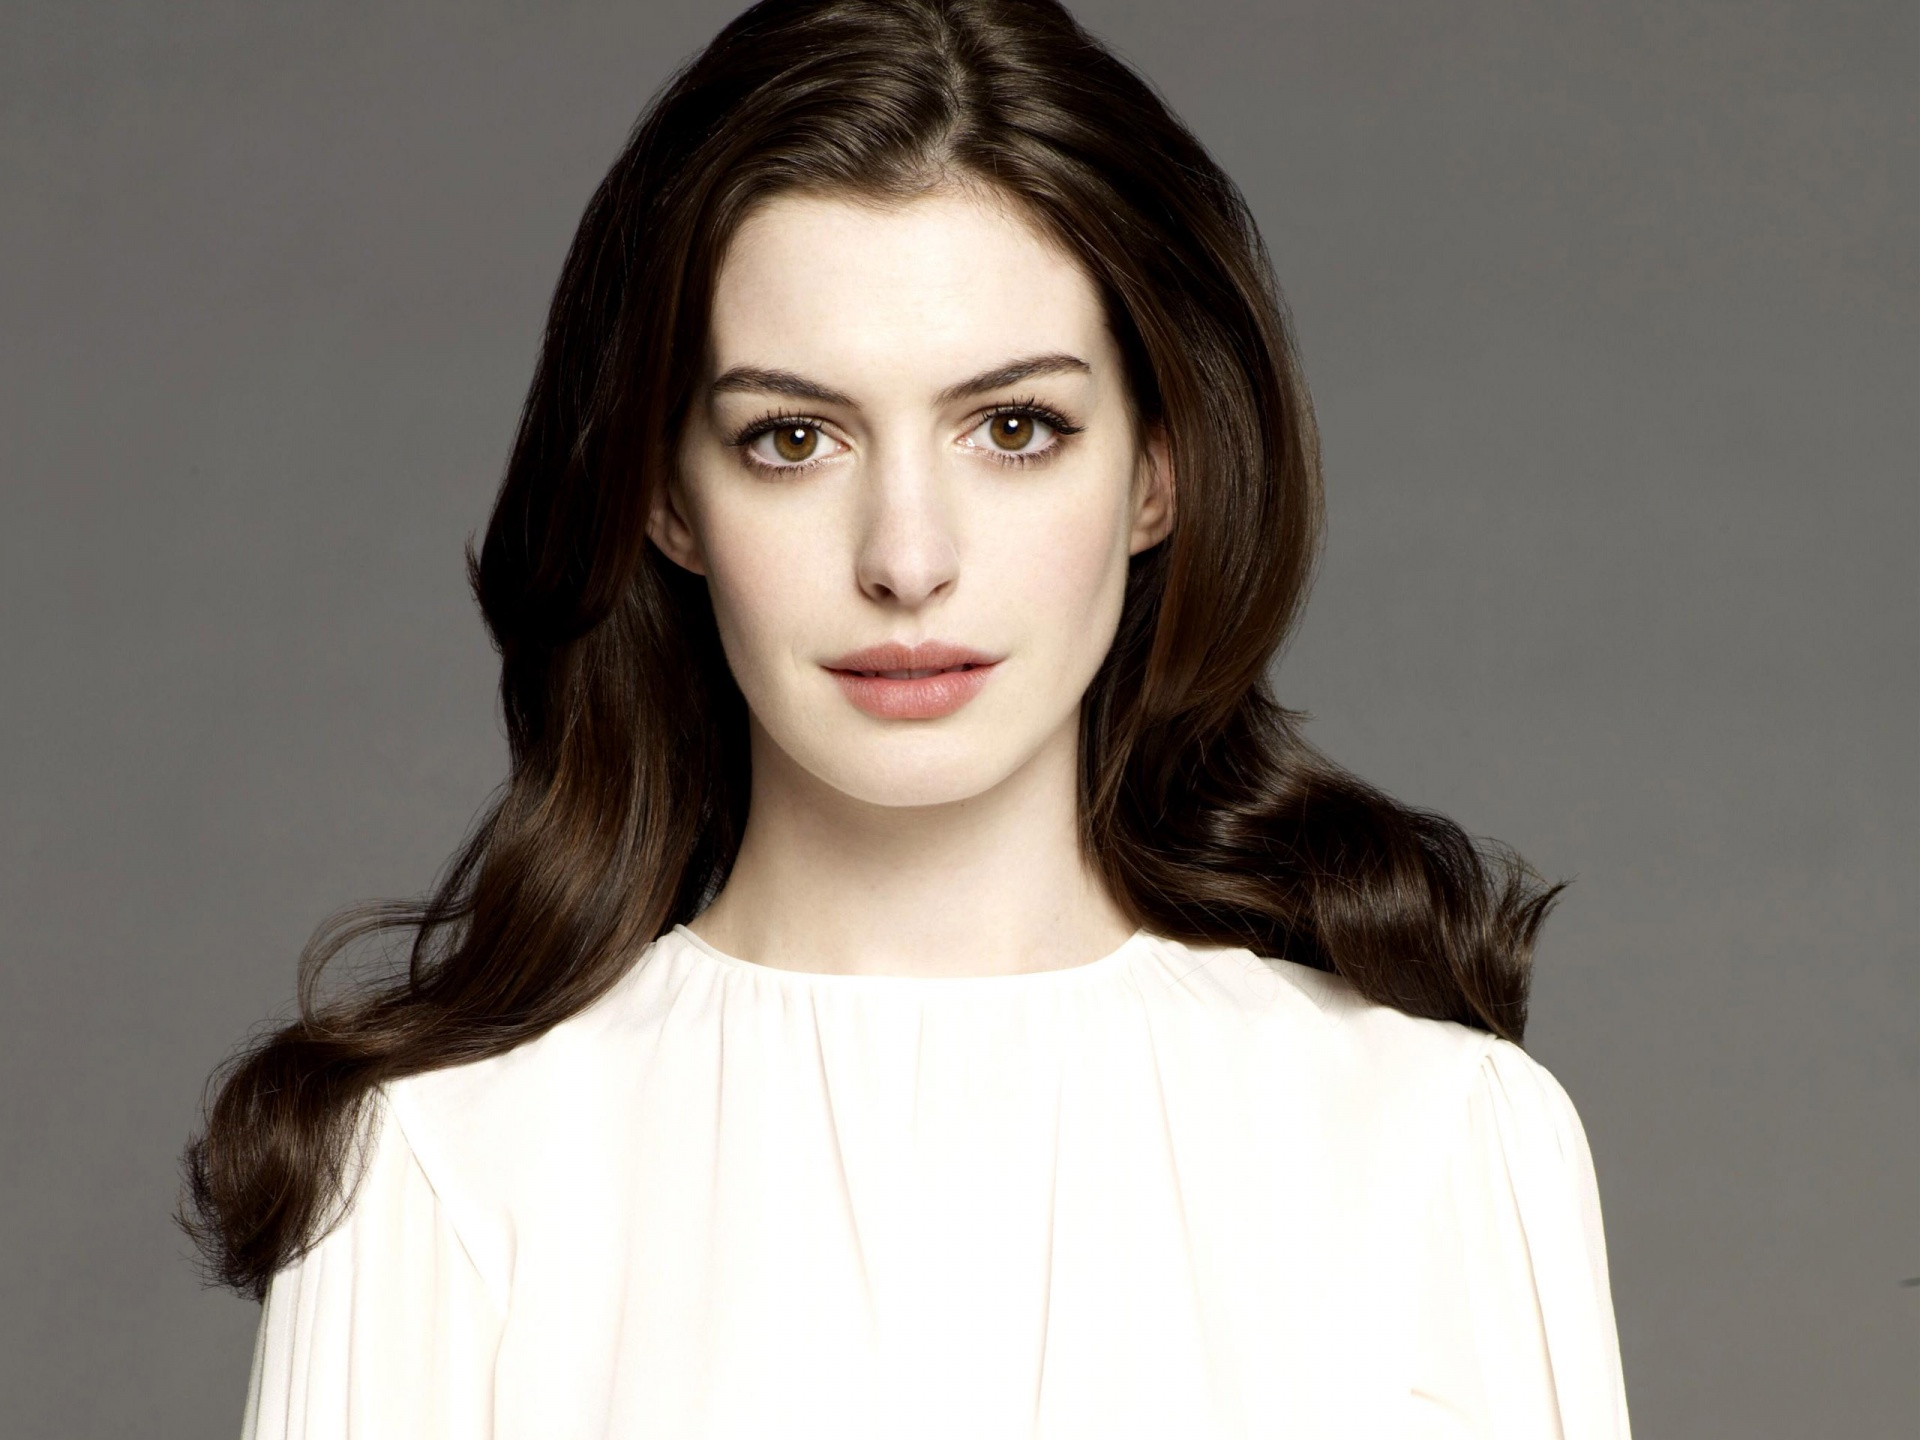 anne hathaway wallpapers hd A4